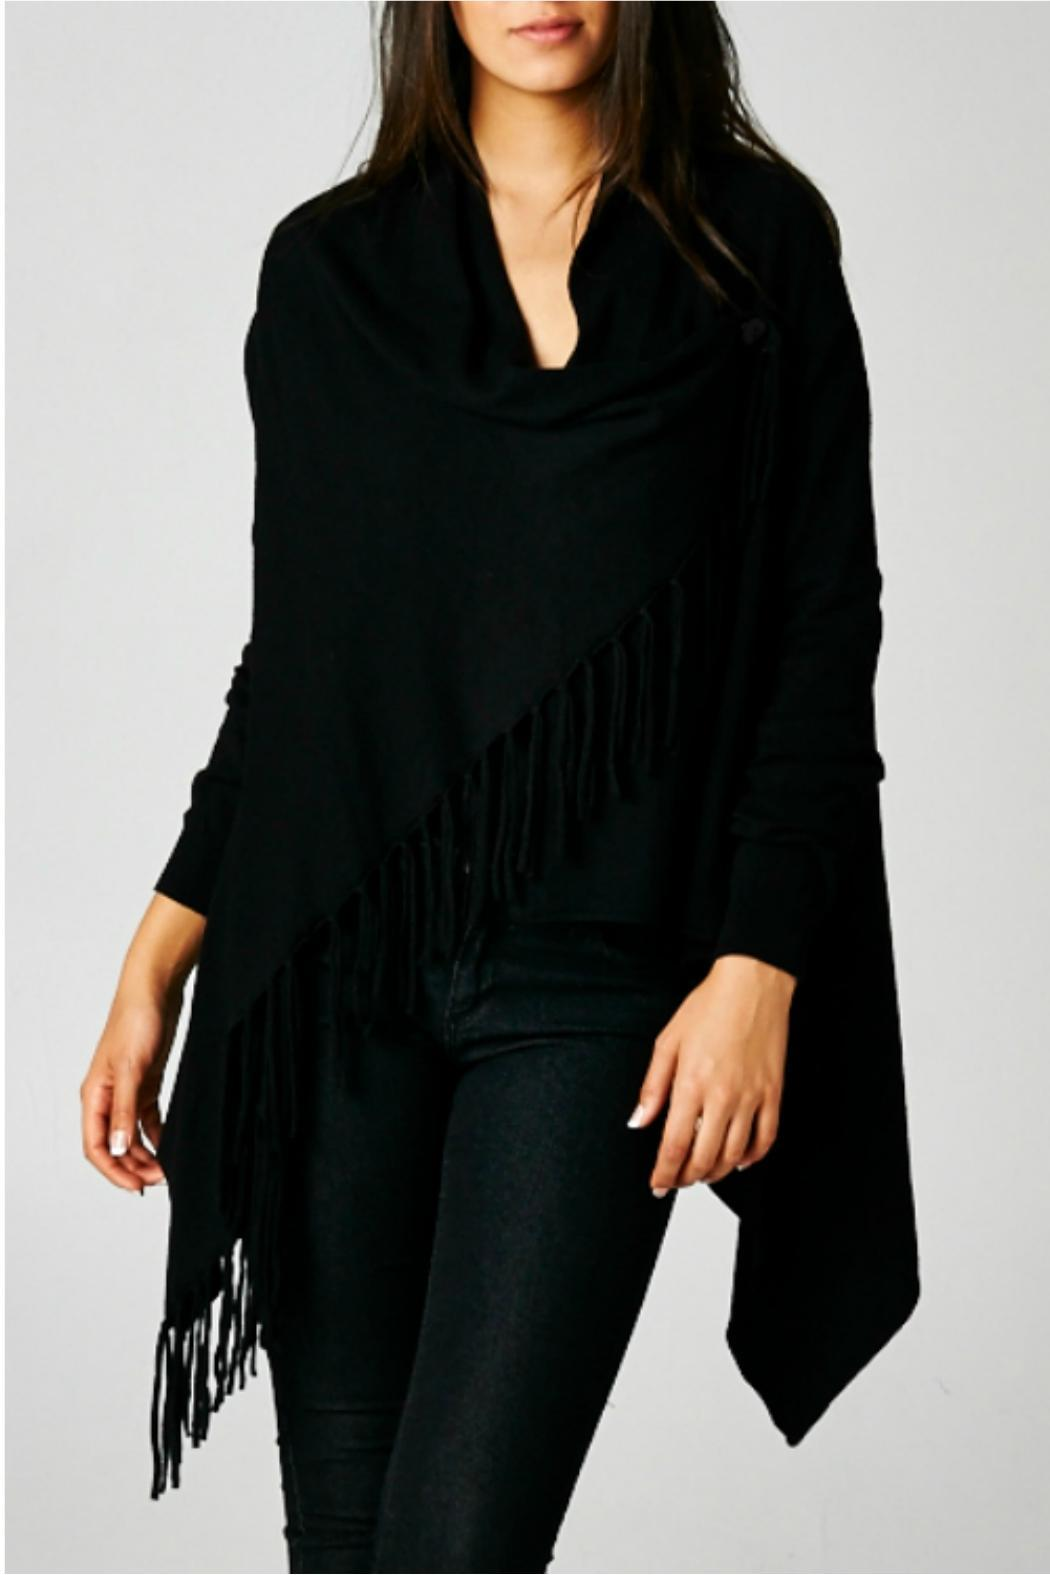 wrap cardigans how to wear